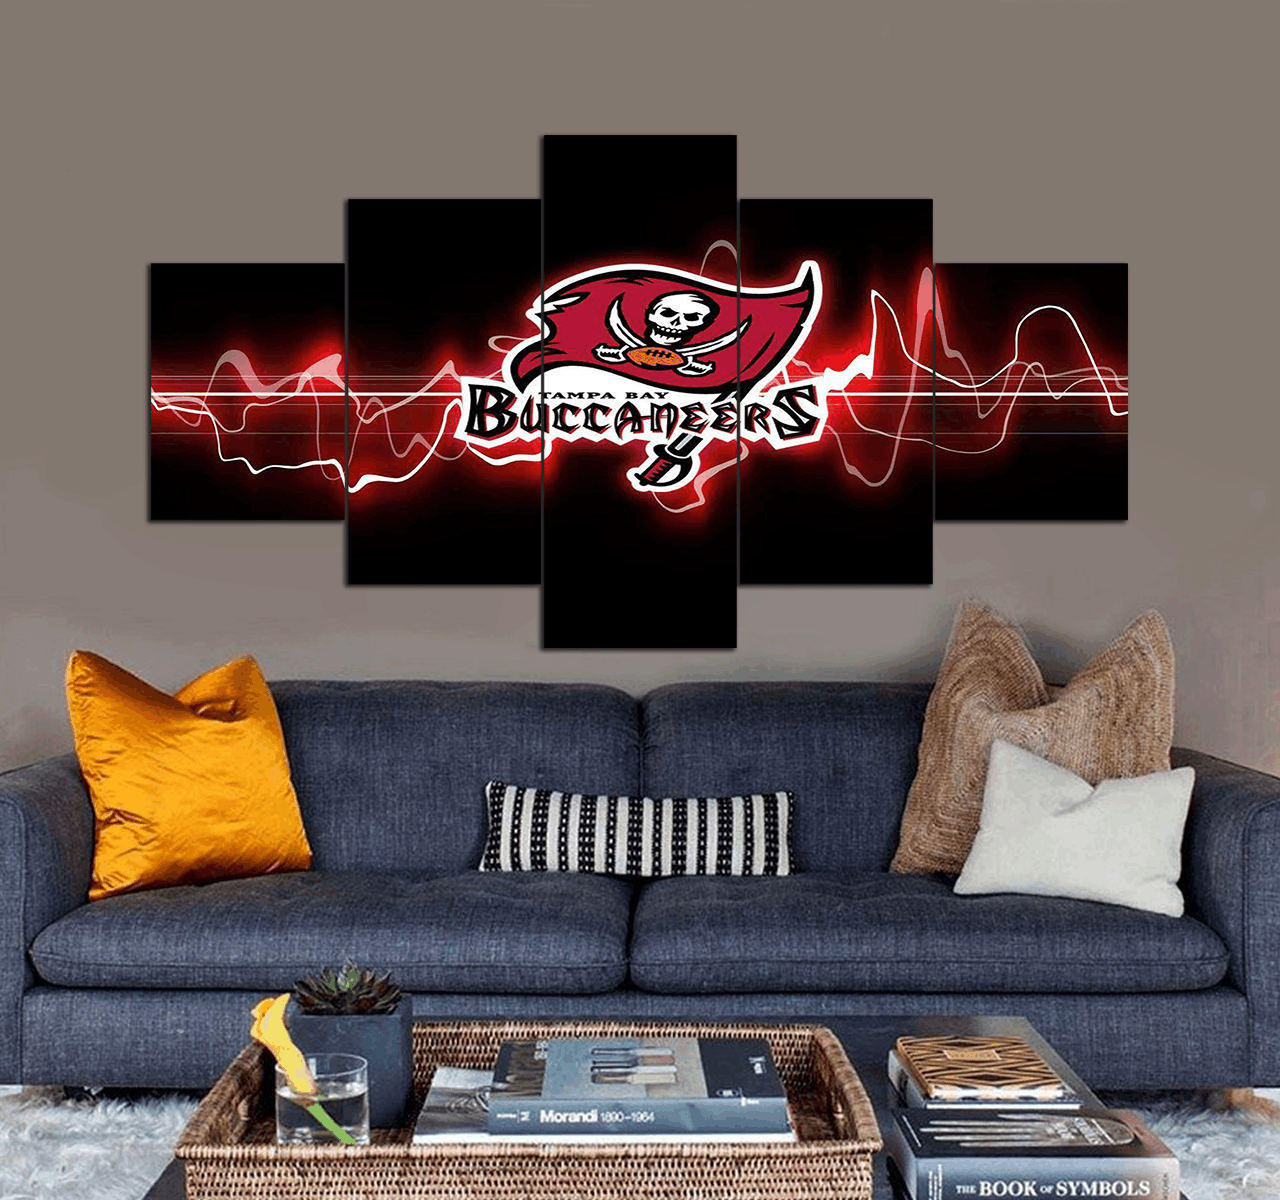 Tampa Bay Buccaneers Football Team Canvas Wall Art Decor 5 Piece Can In 2020 Canvas Art Wall Decor Canvas Wall Art Wall Art